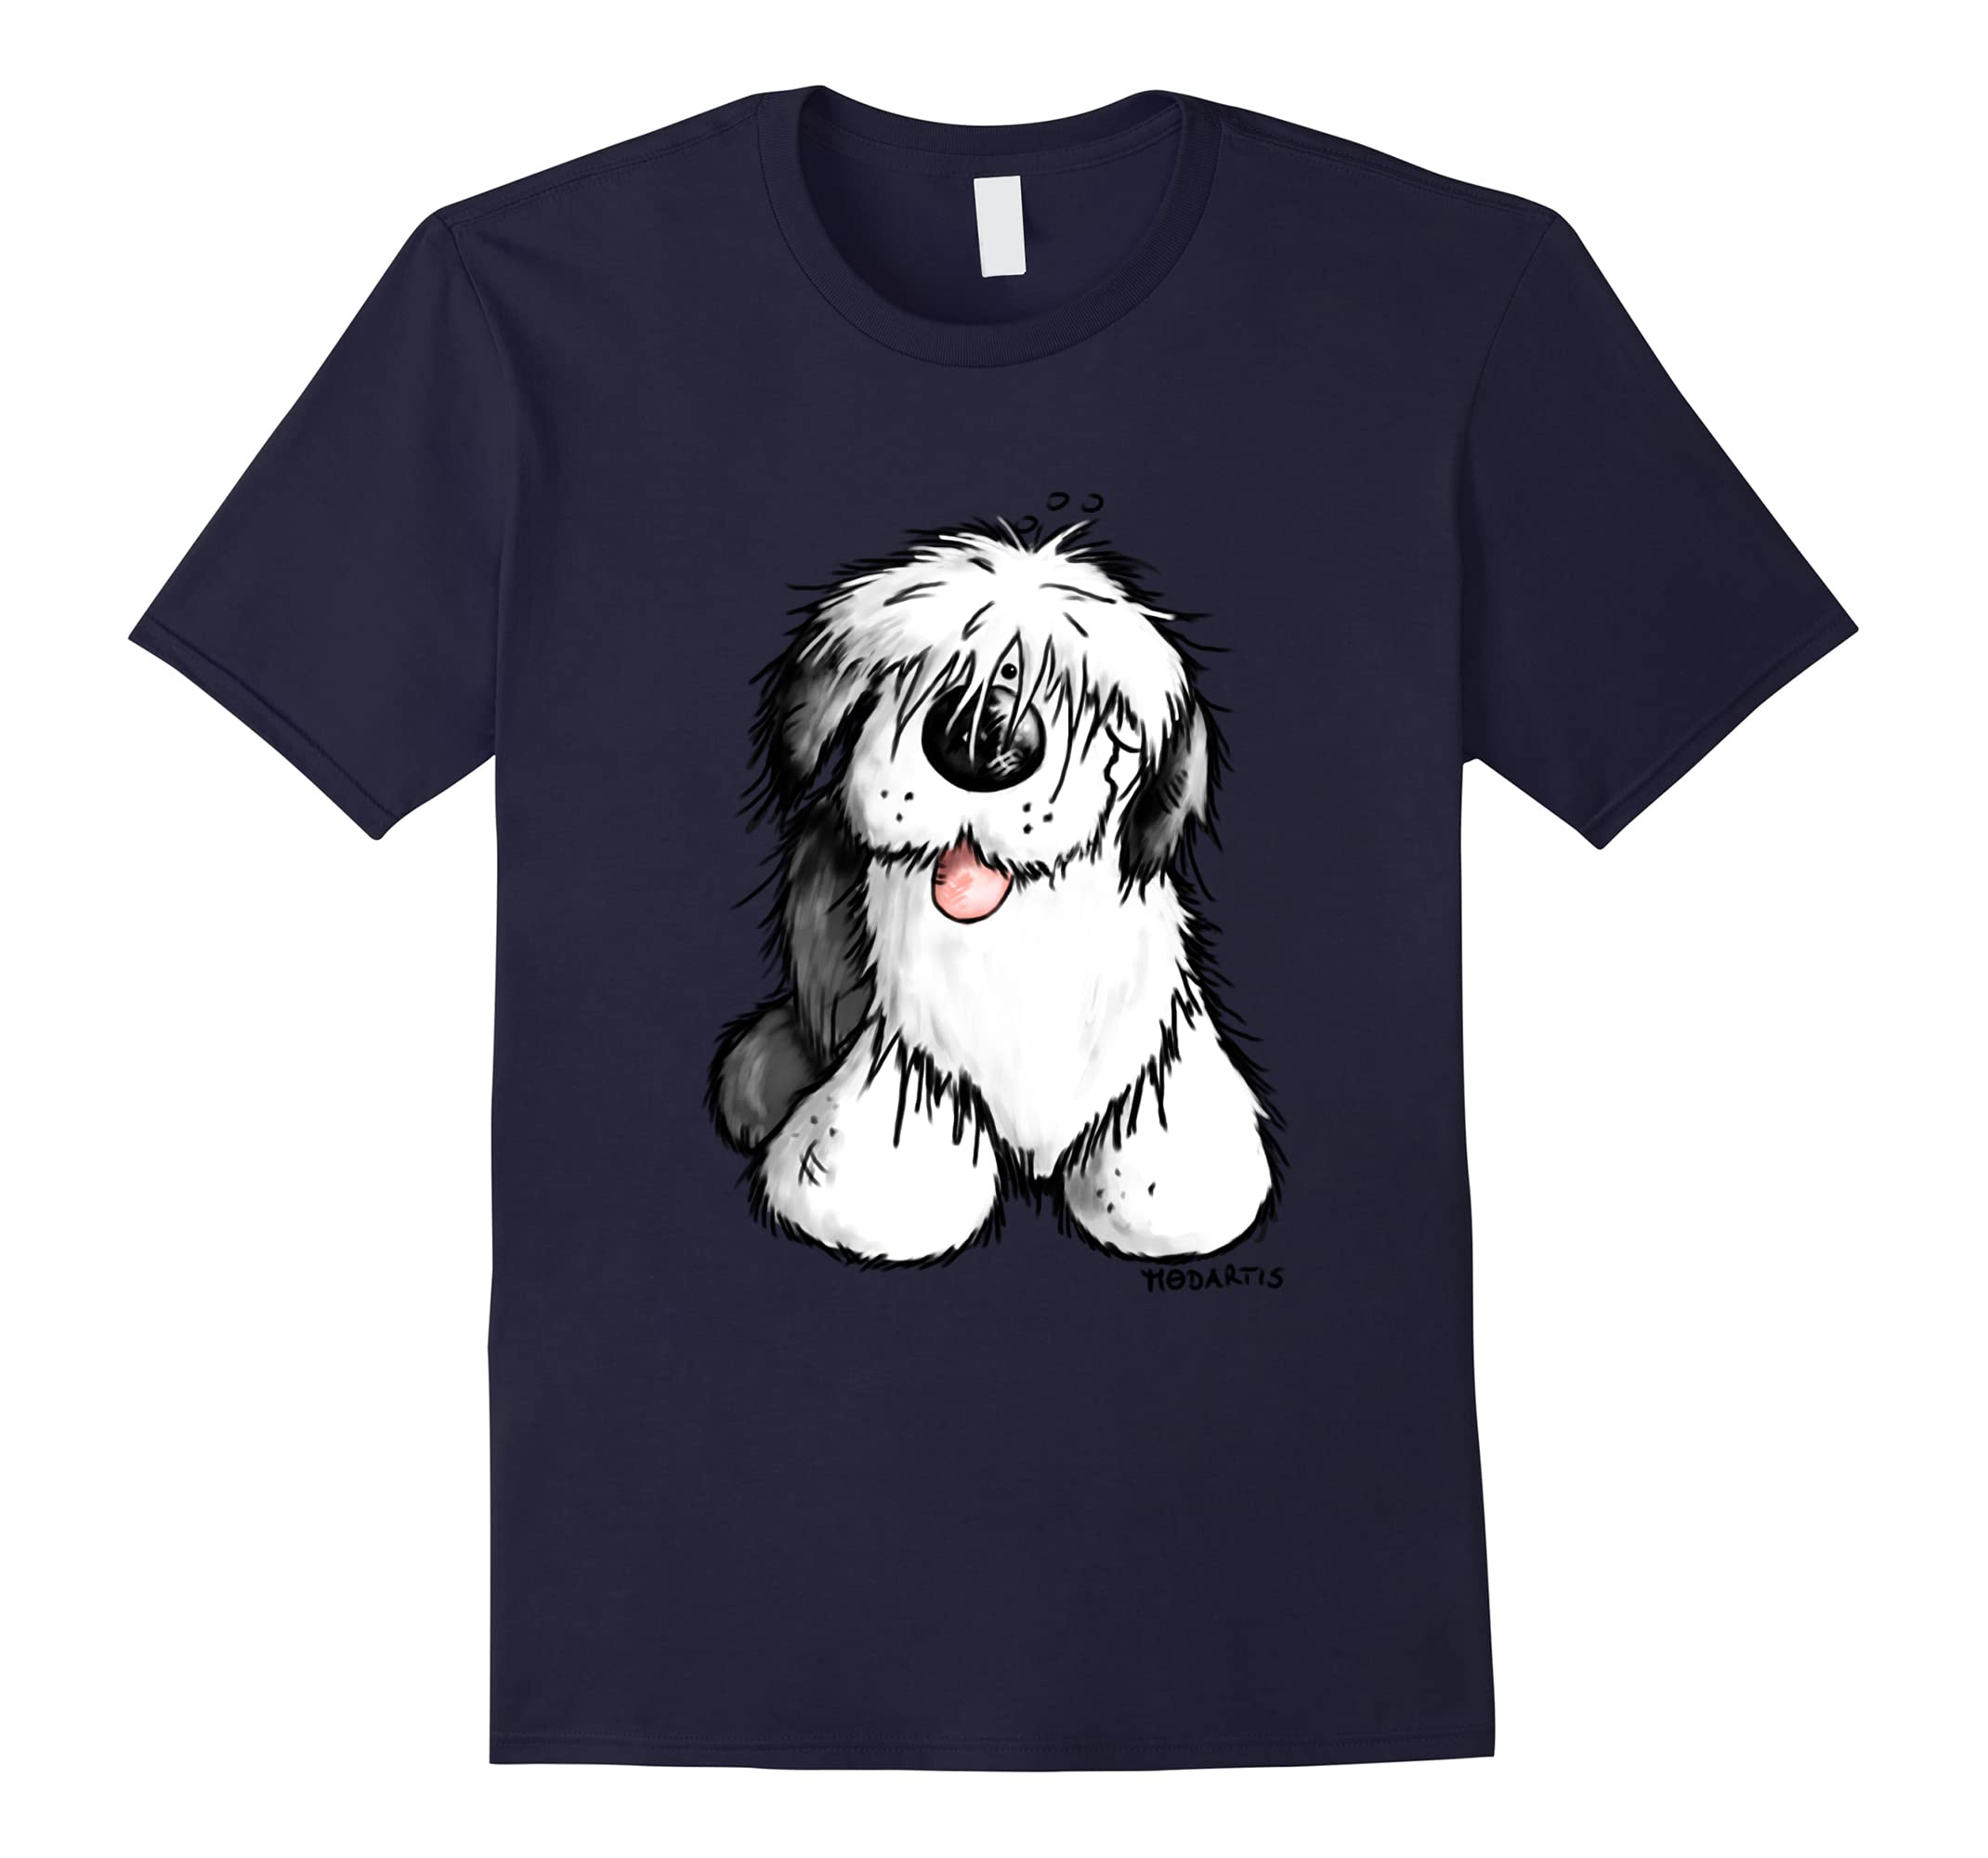 Happy Old English Sheepdog T-Shirt - Bobtail - Dog - Gift-ah my shirt one gift